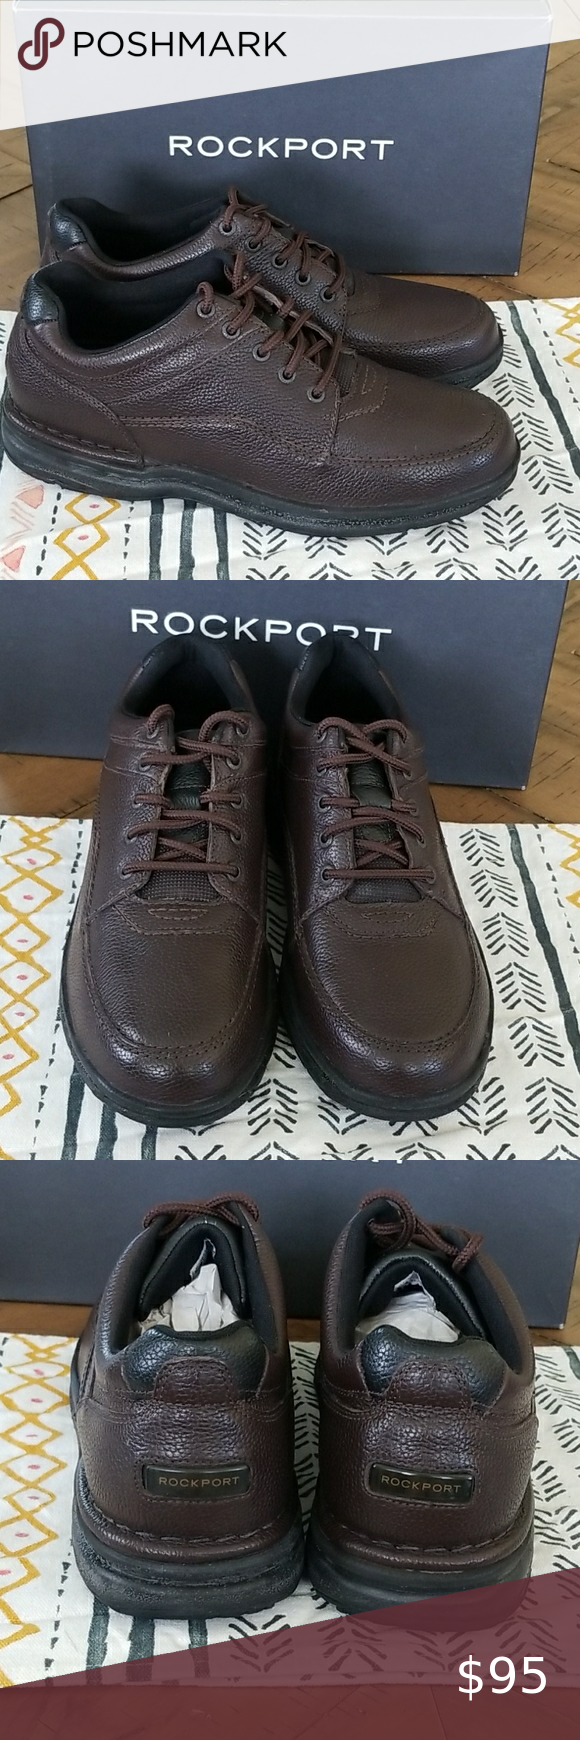 Rockport Ladies Nude Lace Up Leather Trainers Derby Shoes Womens New UK Size 6